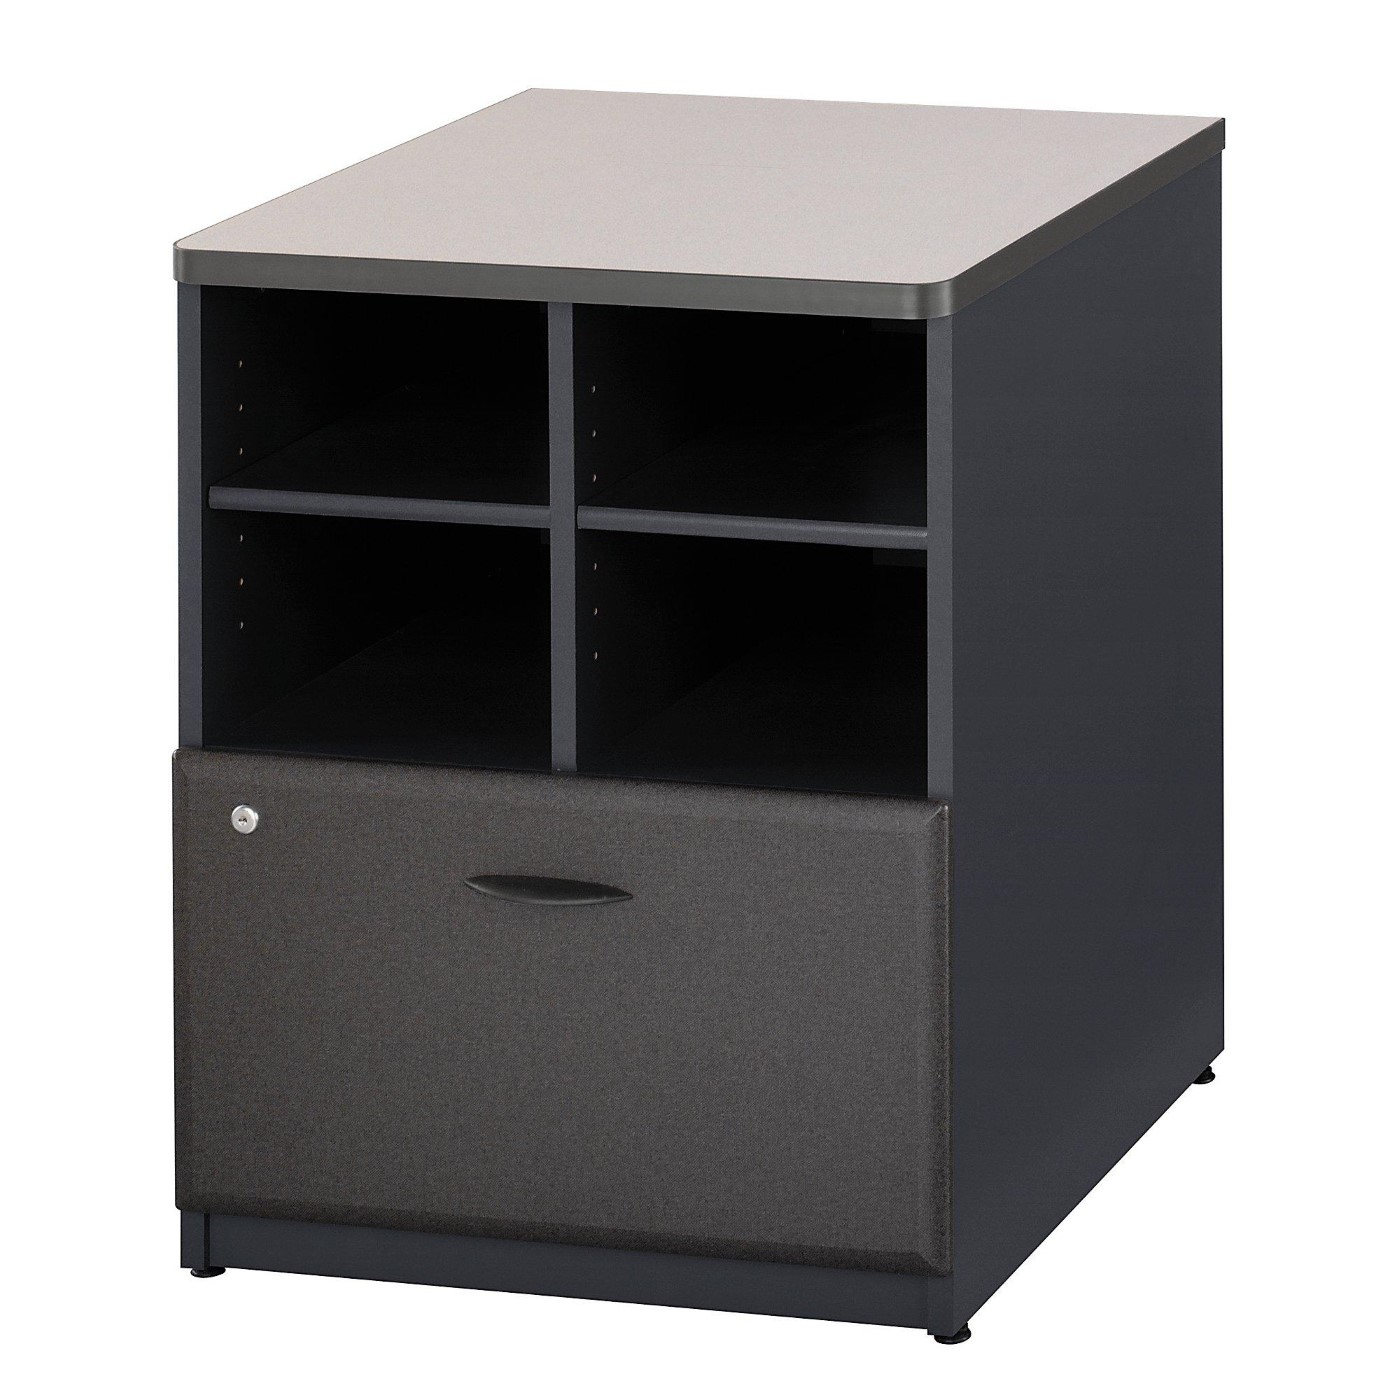 <font color=#c60><b>BUSH BUSINESS FURNITURE SERIES A 24W STORAGE CABINET. FREE SHIPPING</font></b>